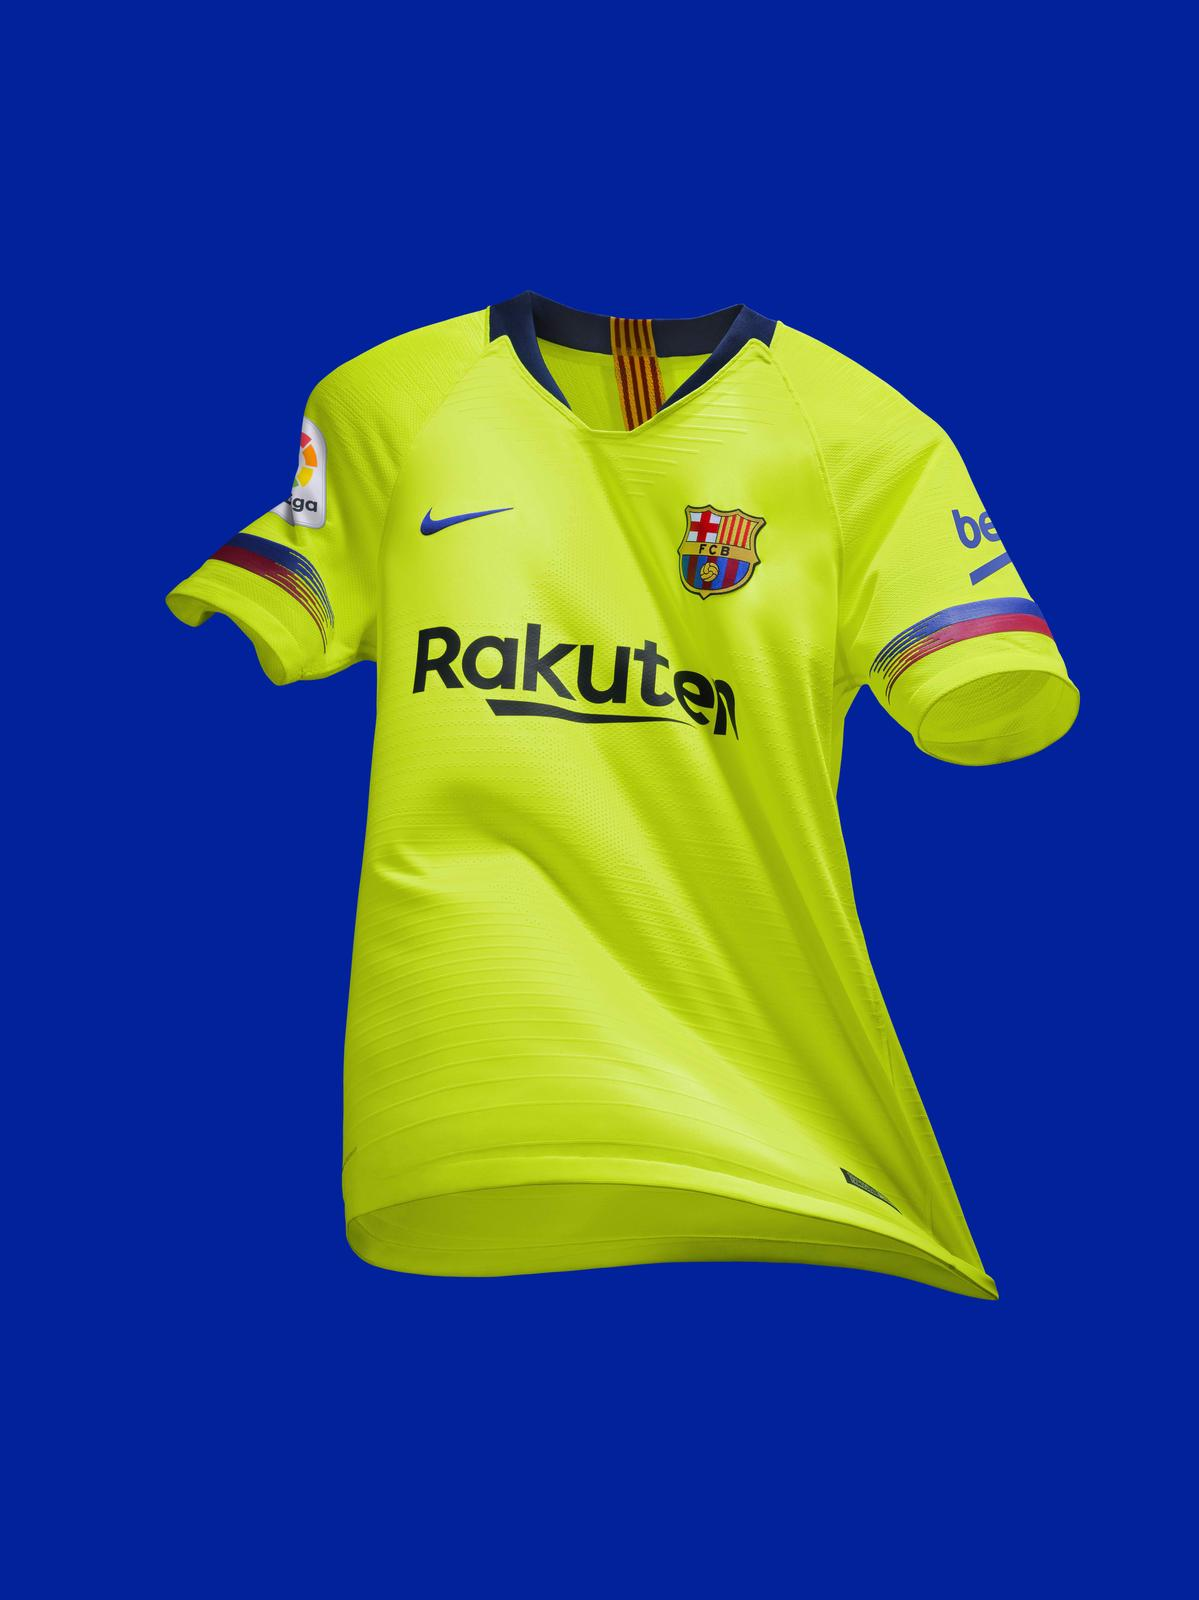 9d22e6839 FC Barcelona s Latest Away Kit Revels in a Daring History - Nike News